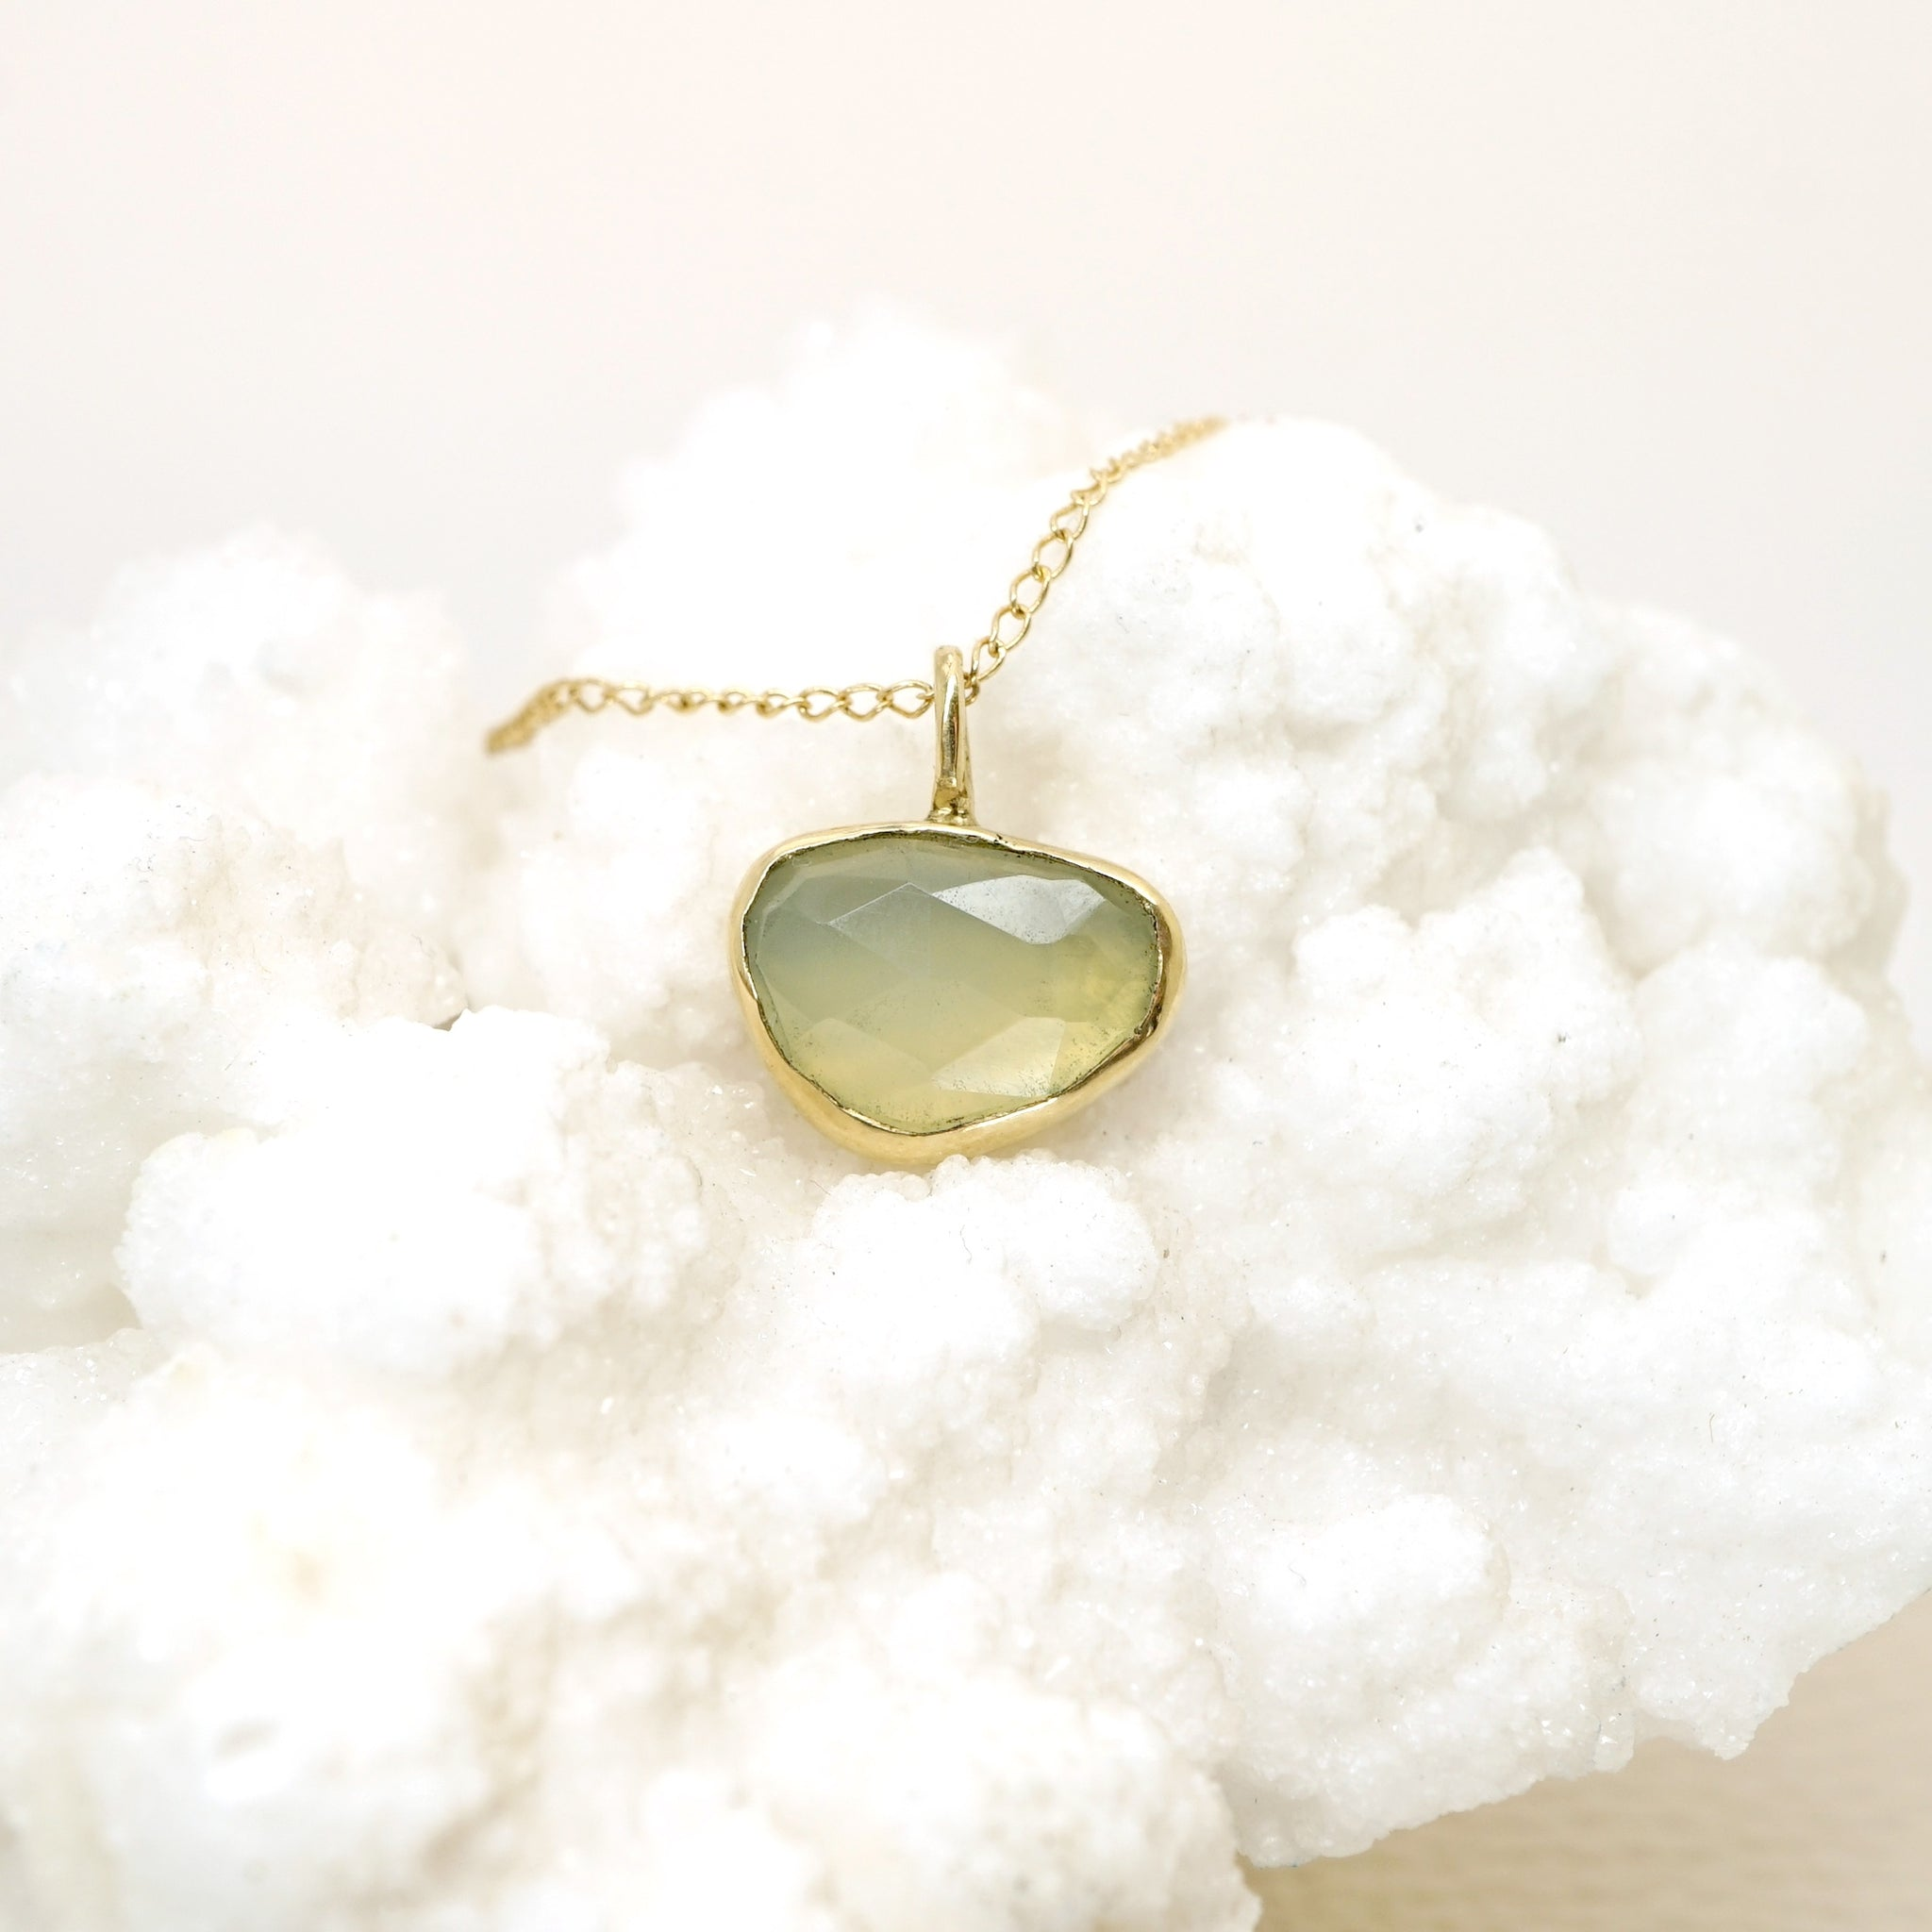 Chalcedony Pendant Necklace in 14k Gold